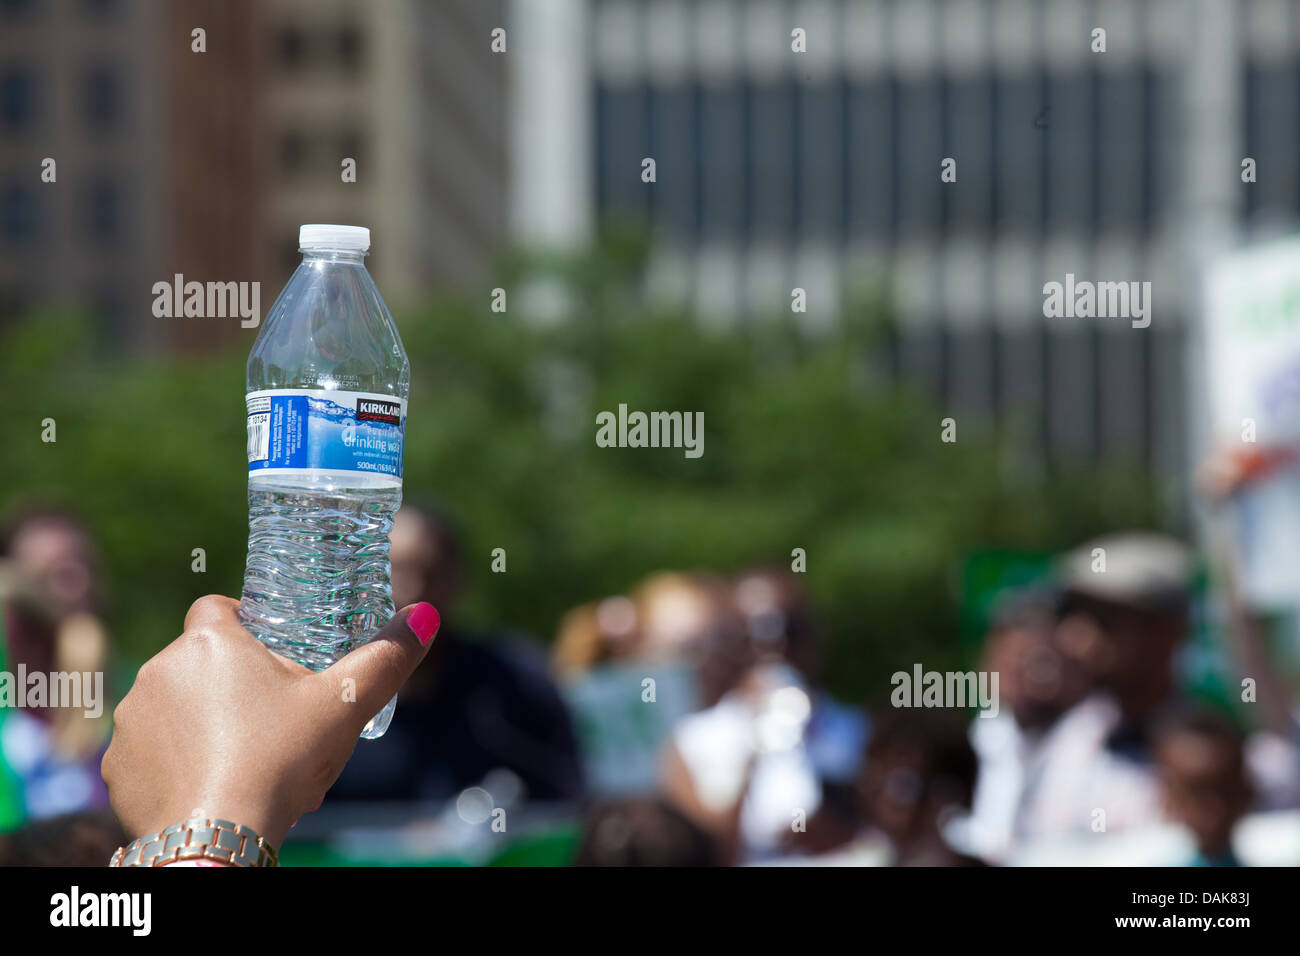 Detroit, Michigan - A woman holds a bottle of drinking water on a hot summer day. - Stock Image